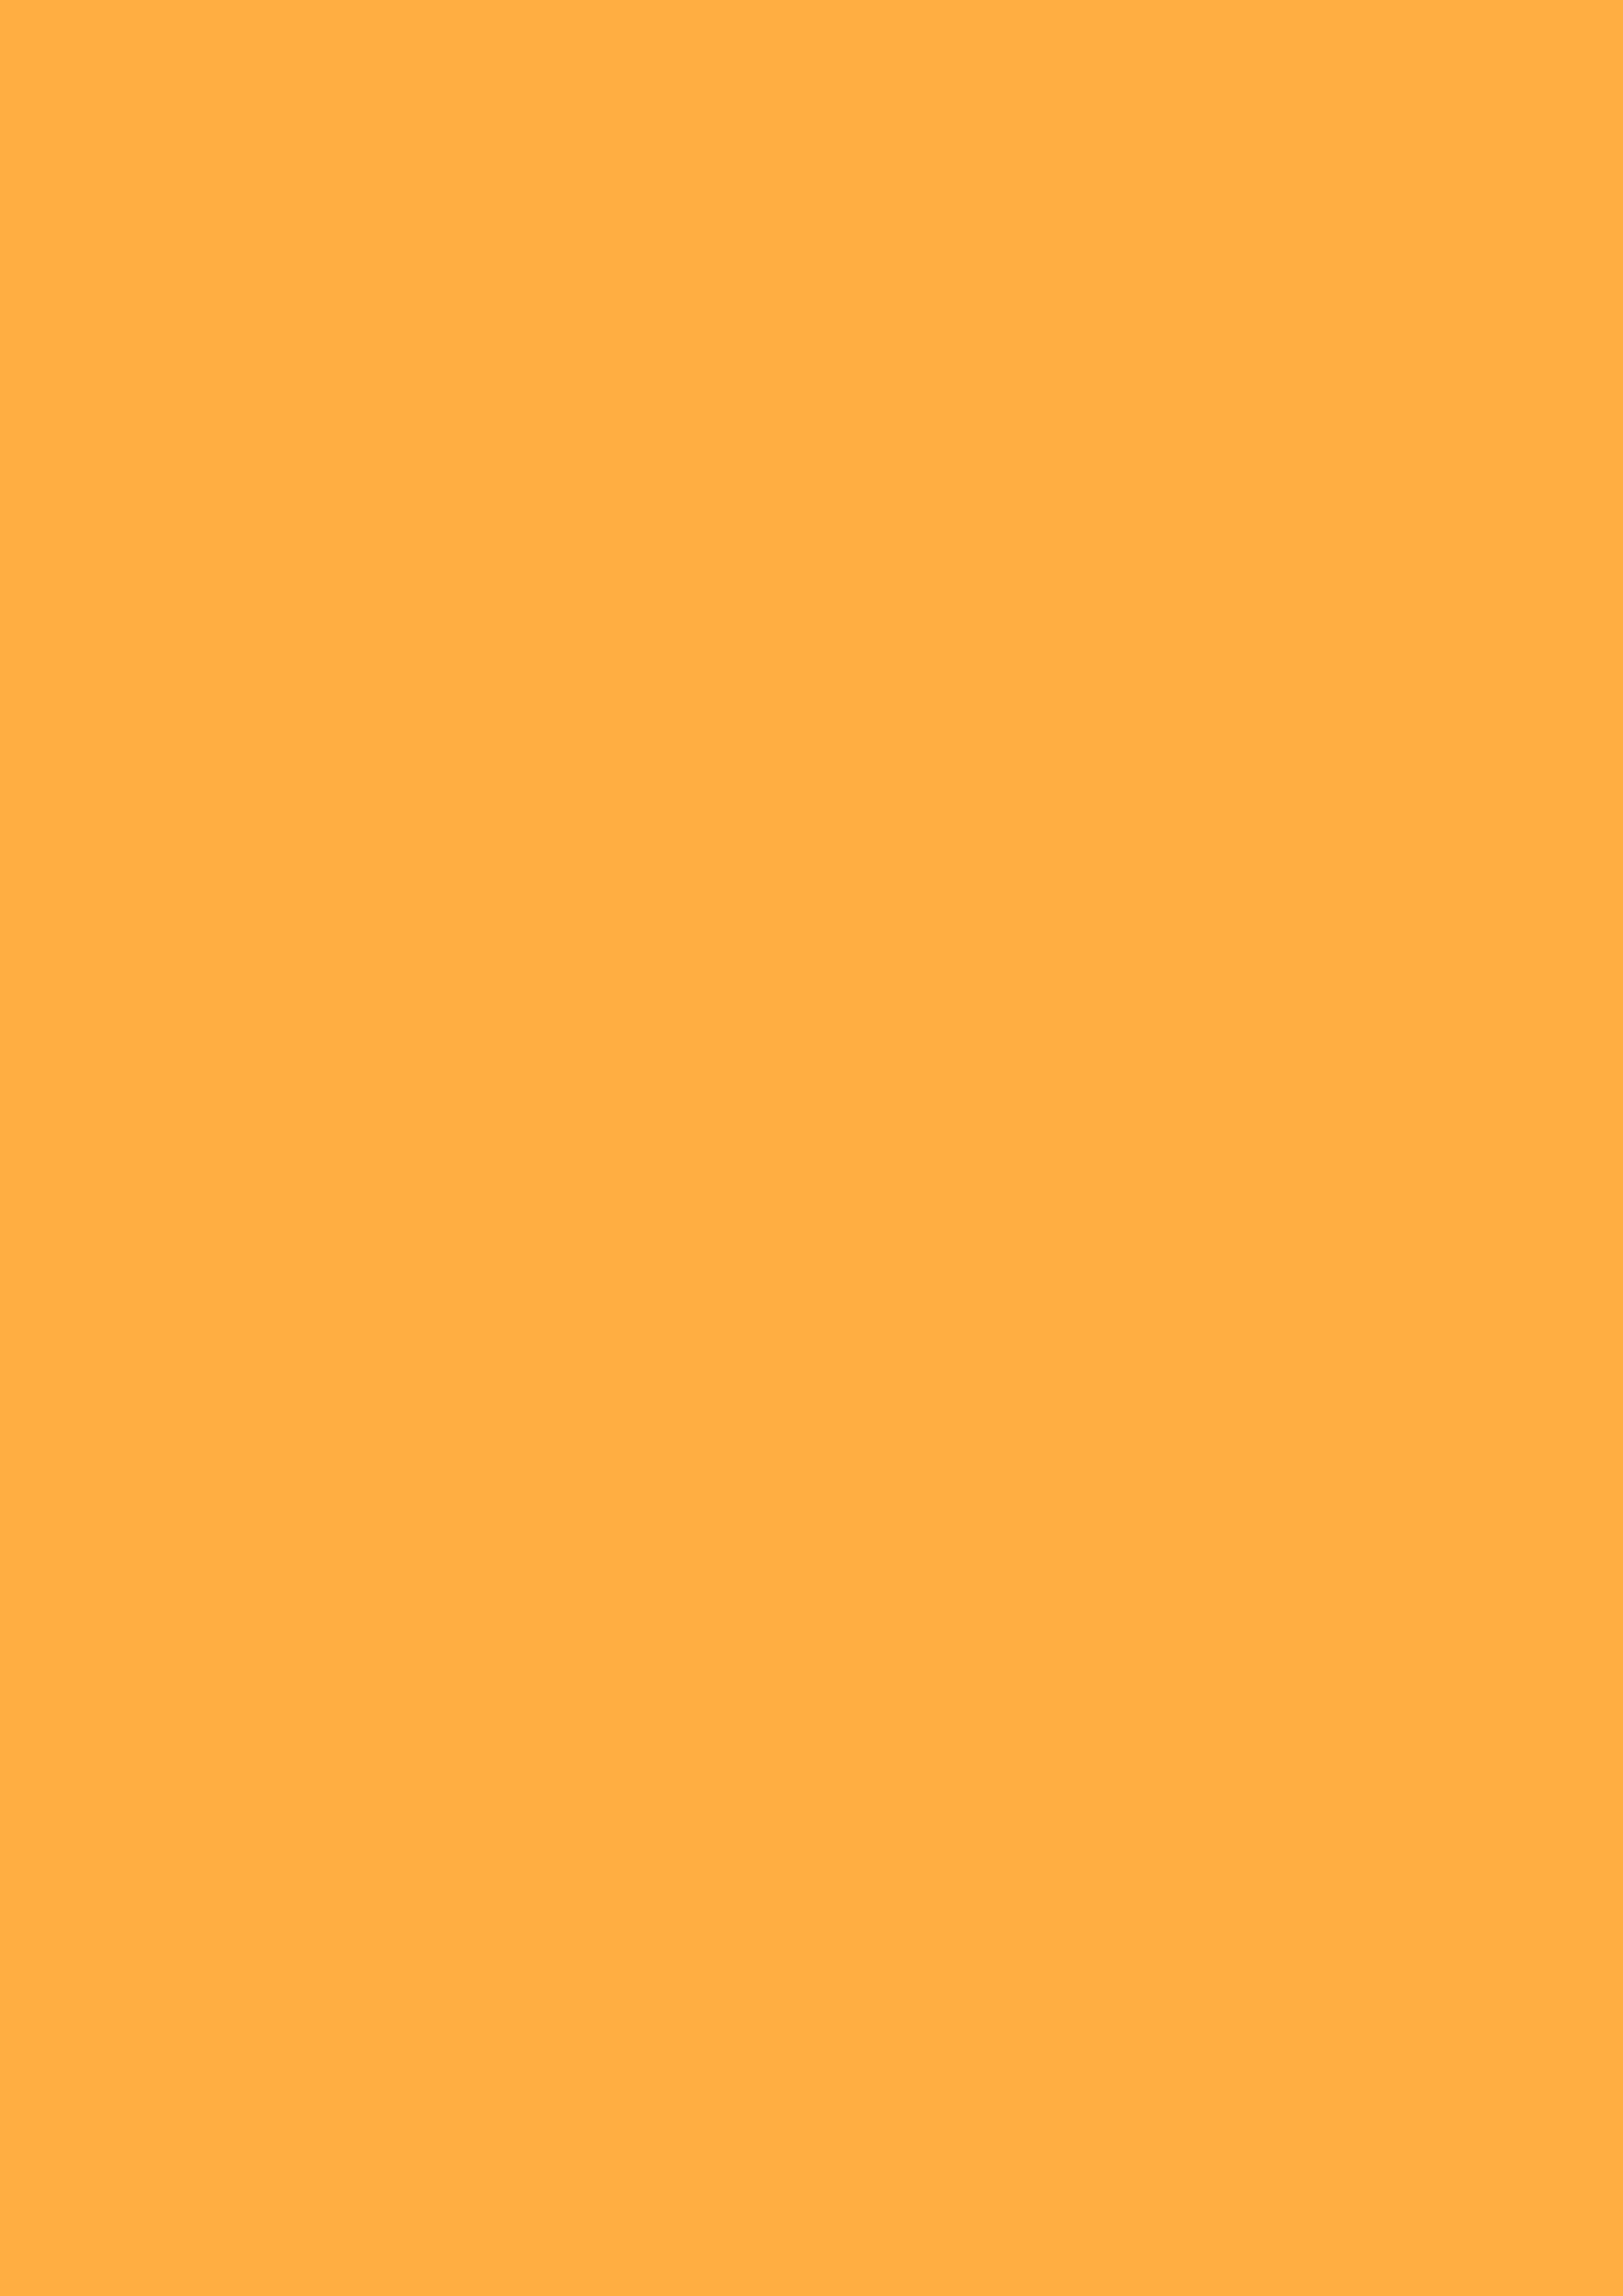 2480x3508 Yellow Orange Solid Color Background